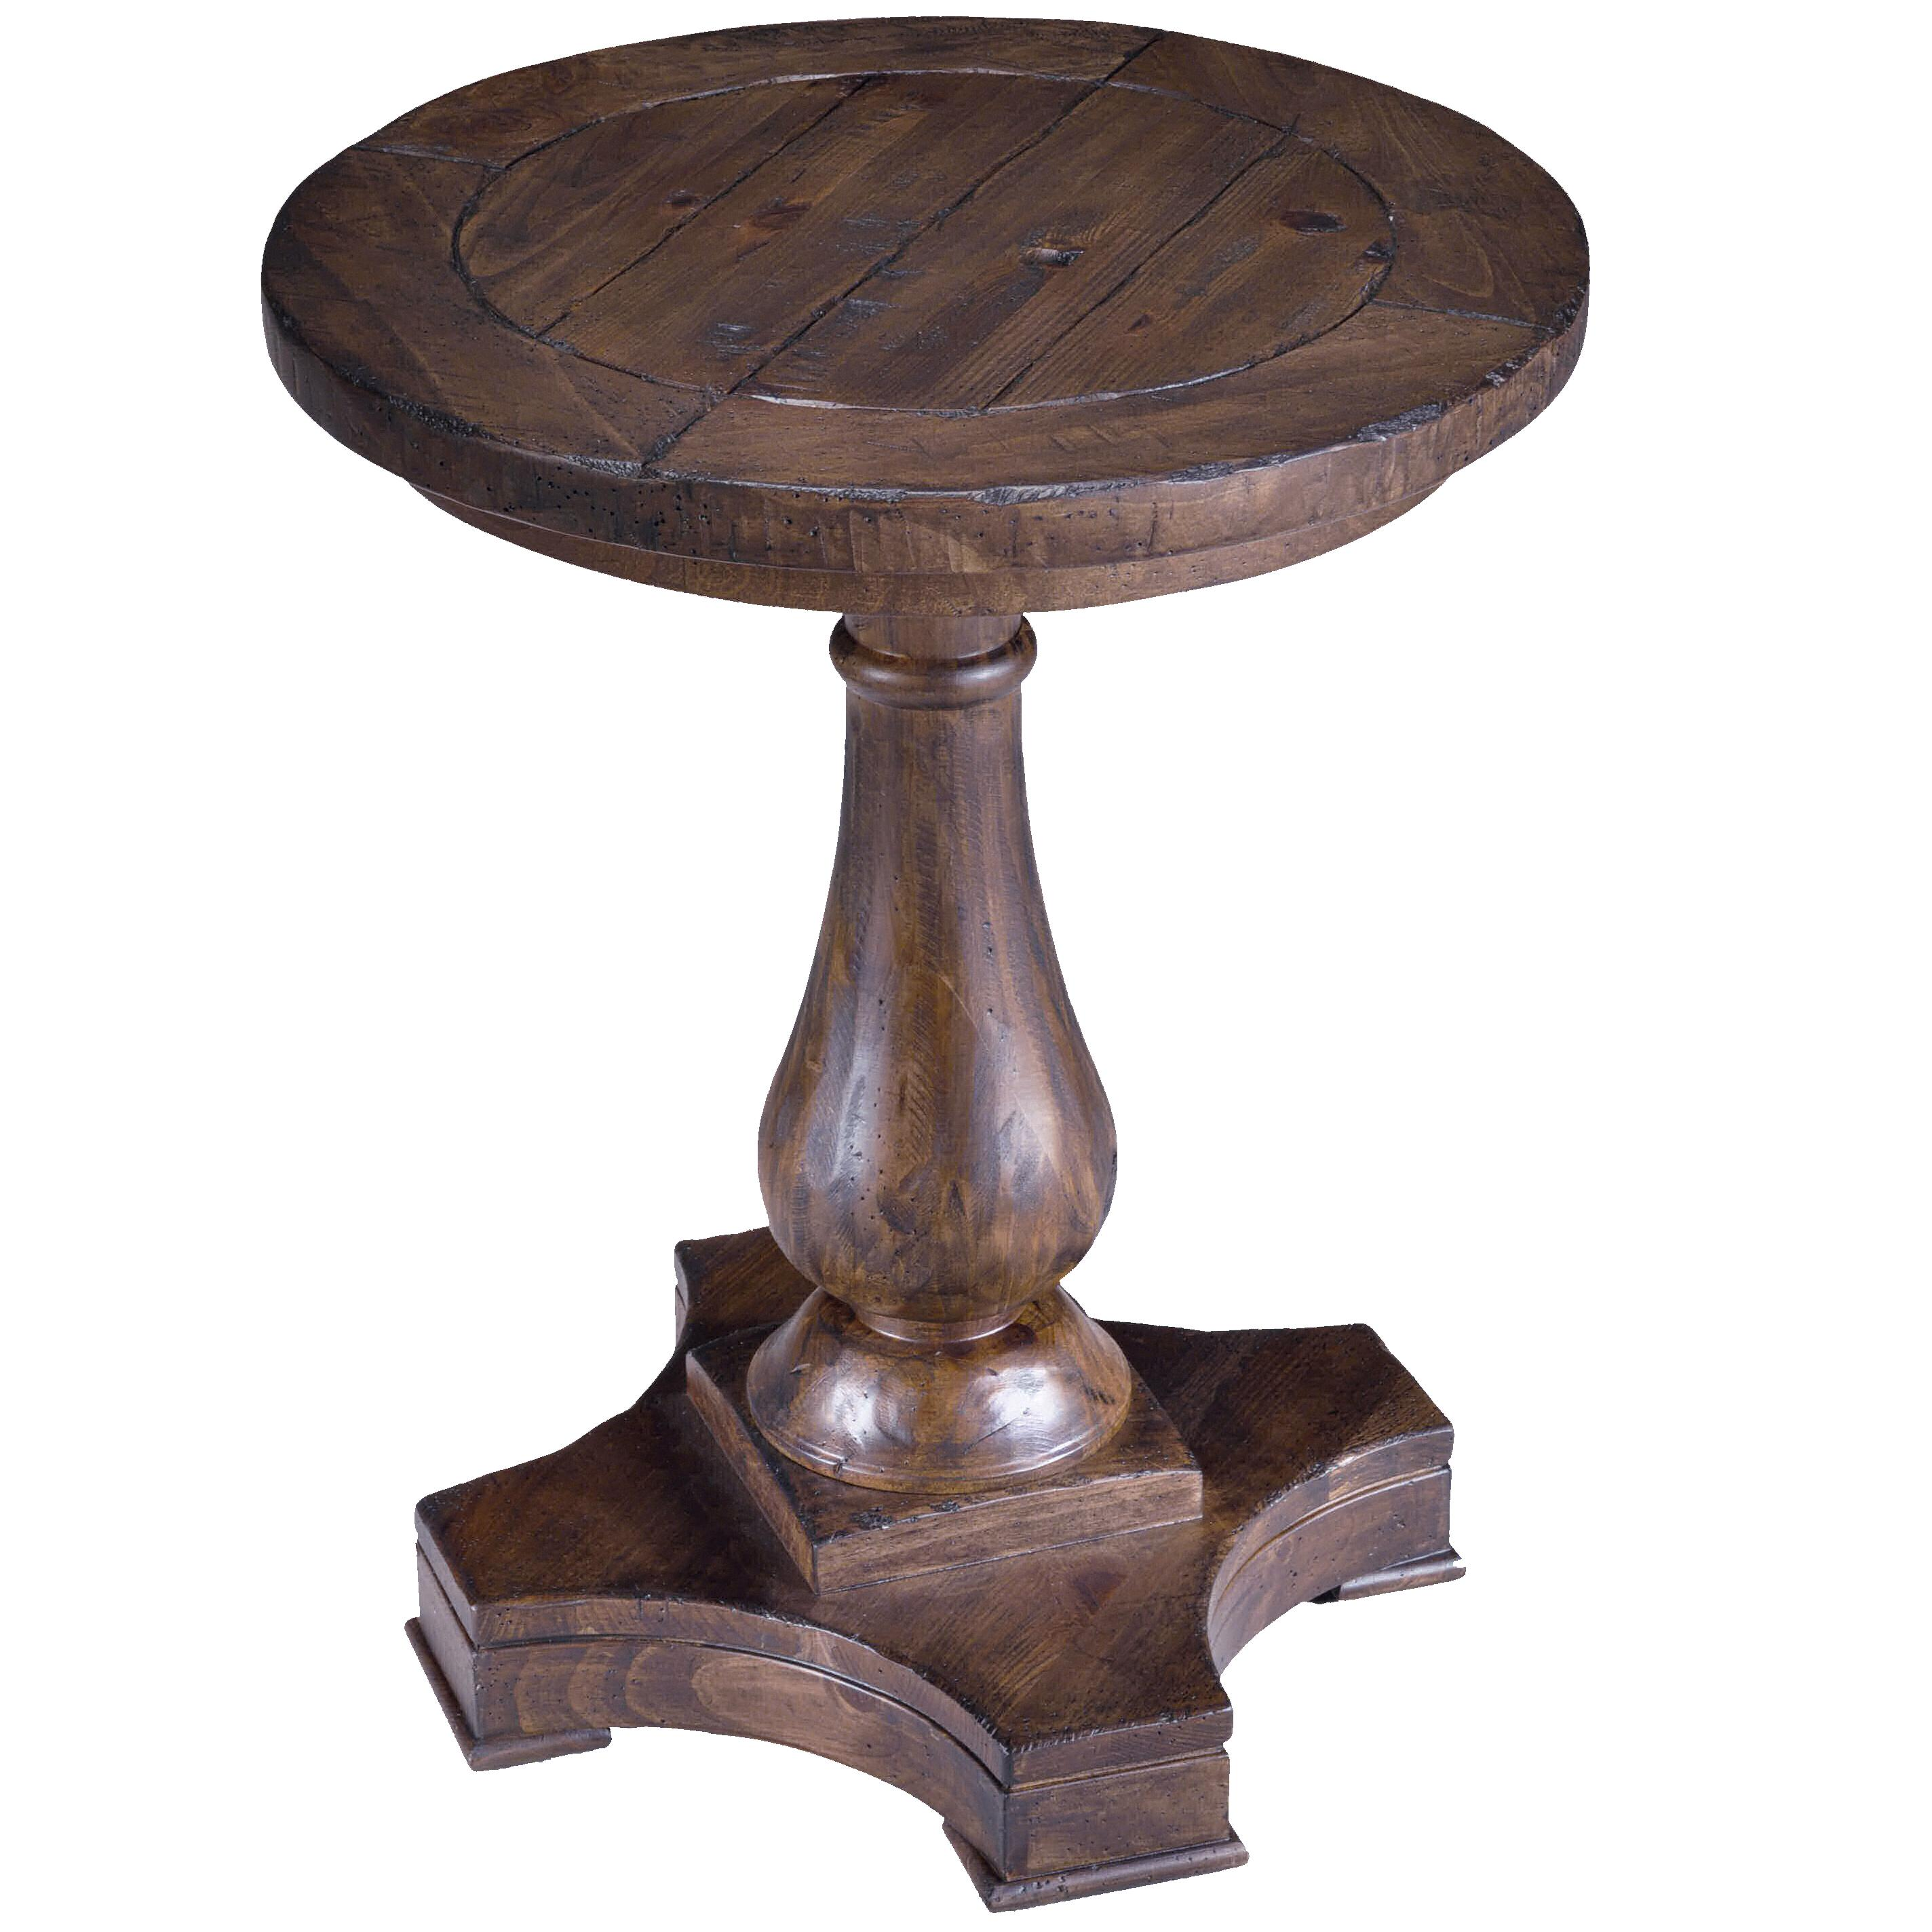 magnussen home densbury round column pedestal accent end elephant simplify table diy avenue six piece chair and set wicker patio furniture sets pier side pottery barn red console